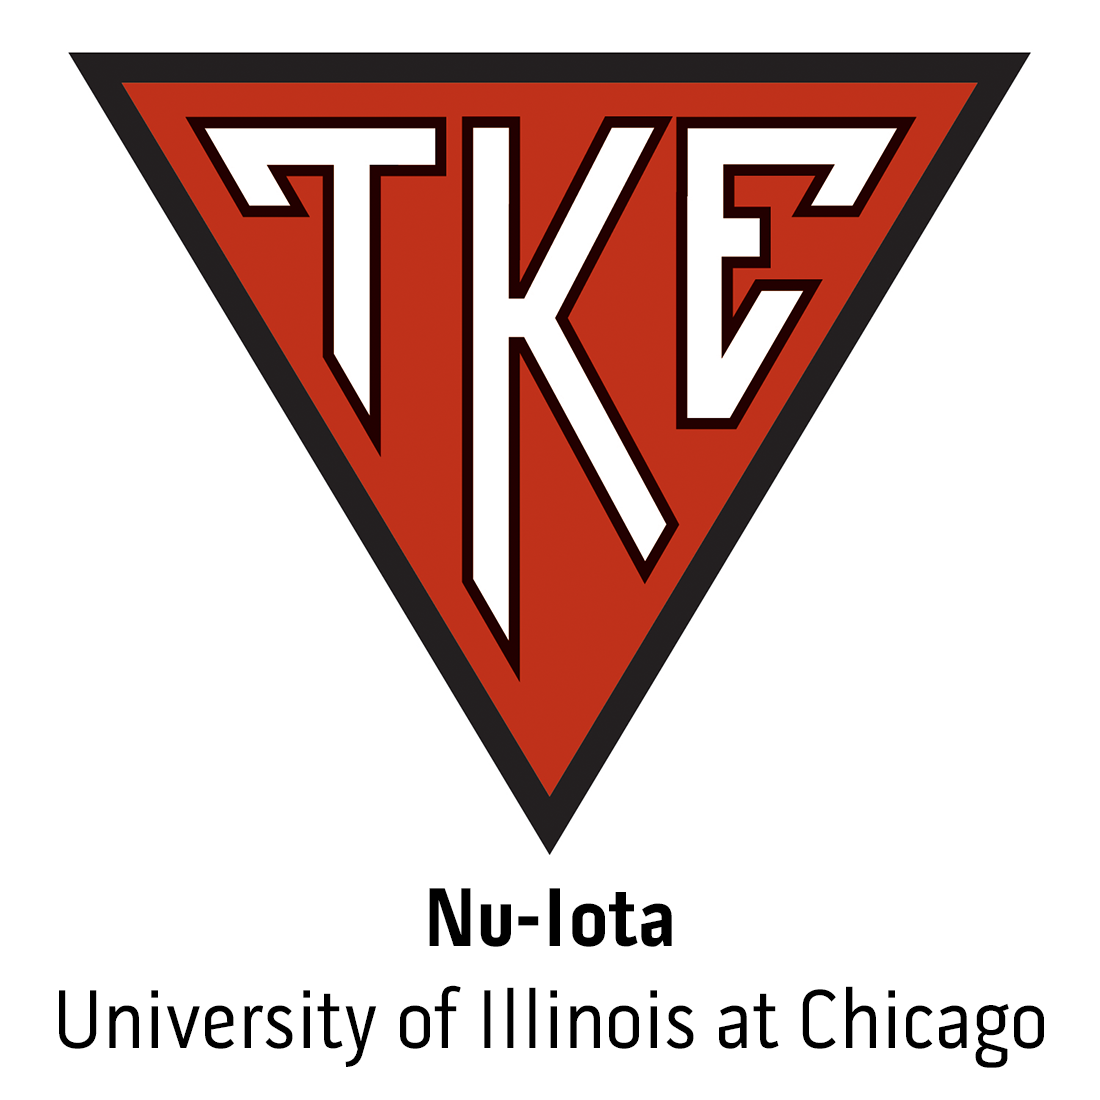 Nu-Iota Colony L at University of Illinois at Chicago